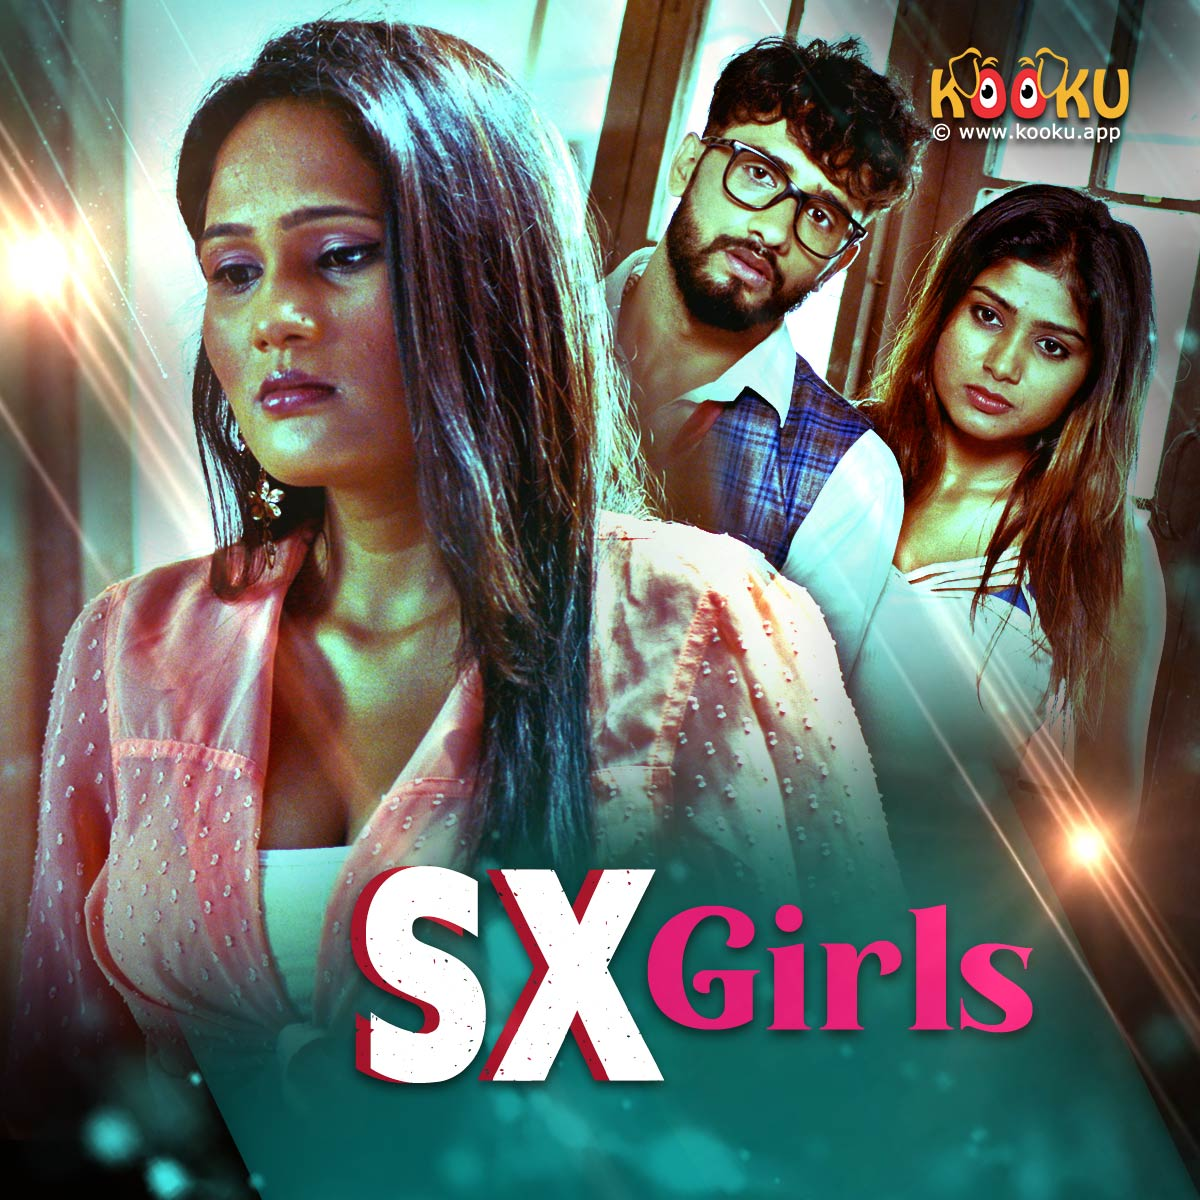 SX Girls 2021 S01 Complete Hindi Kooku App Web Series 720p HDRip Download